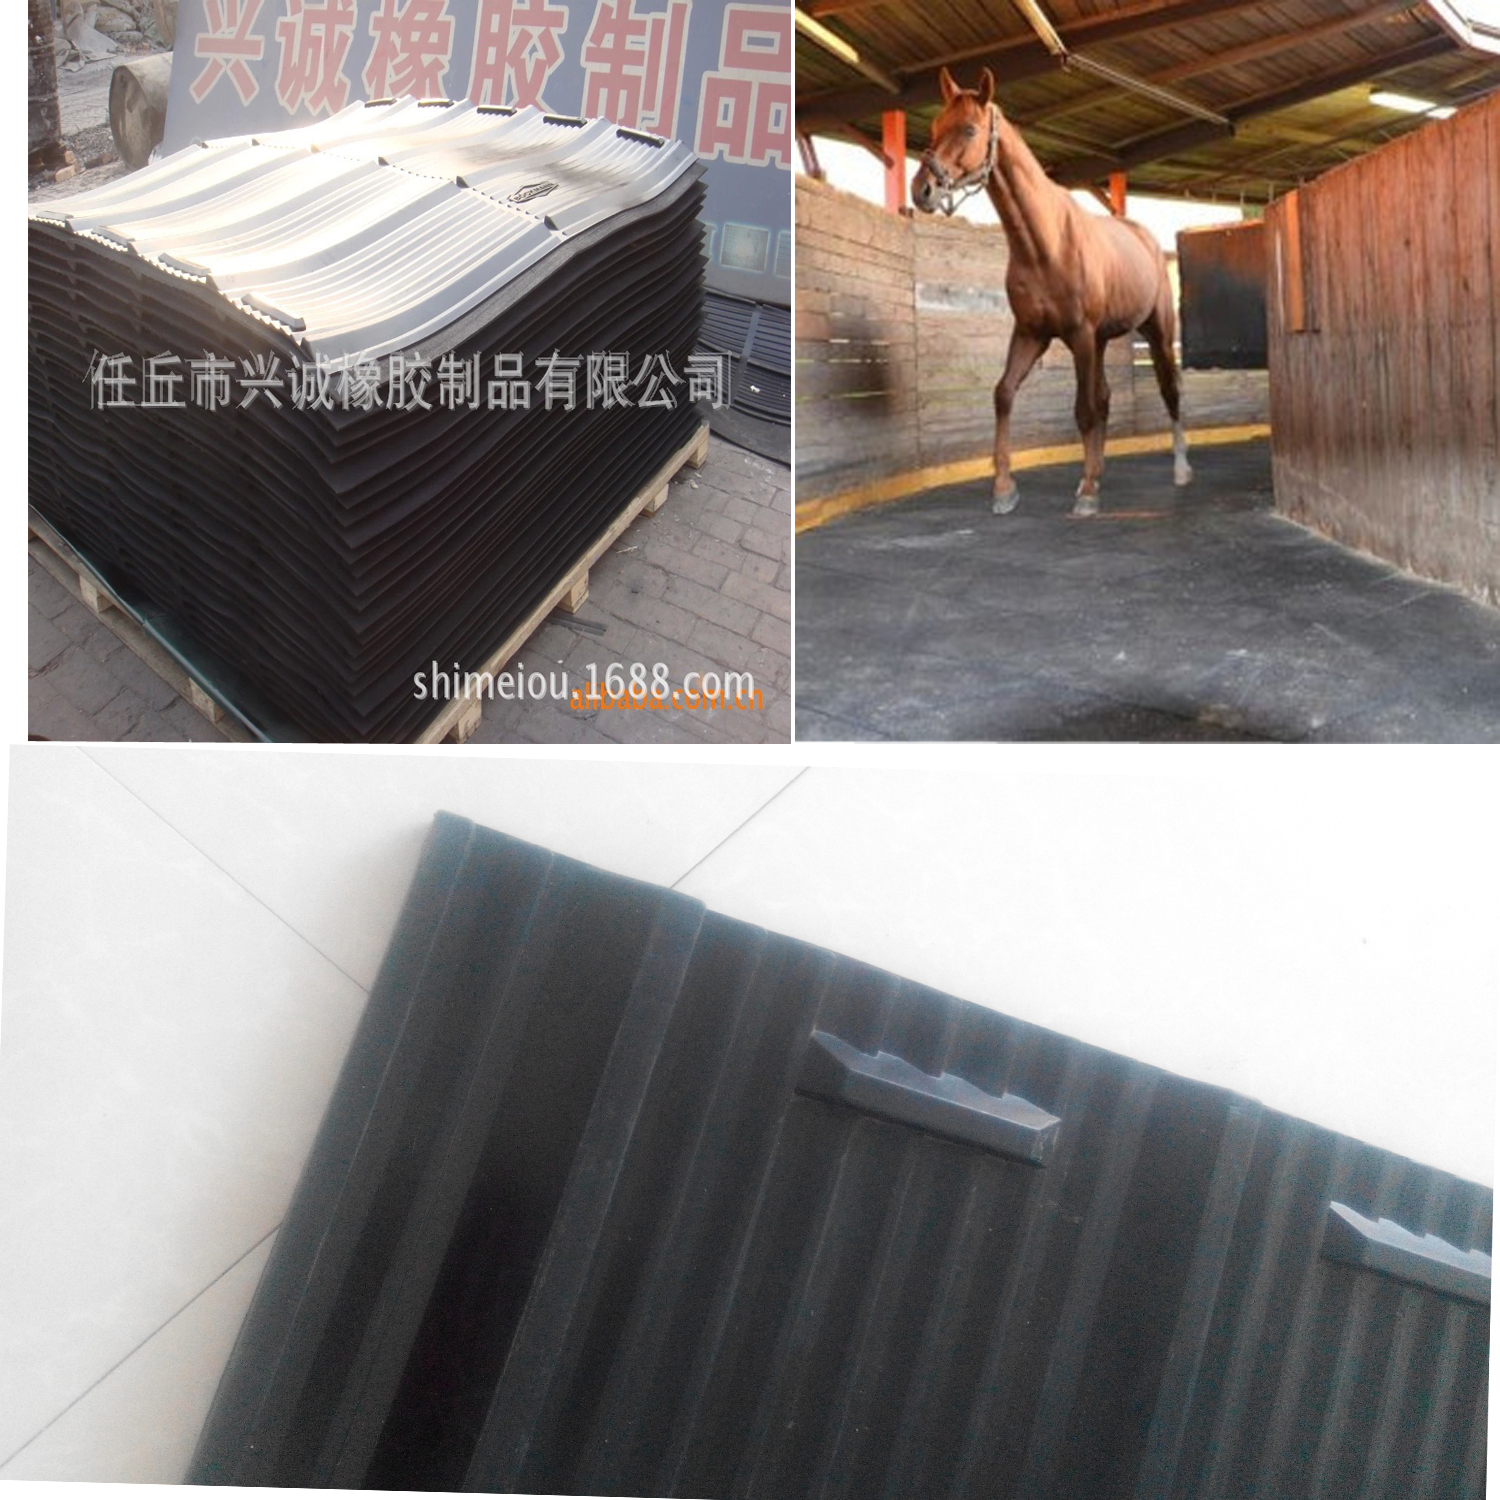 rubber stable horse matting